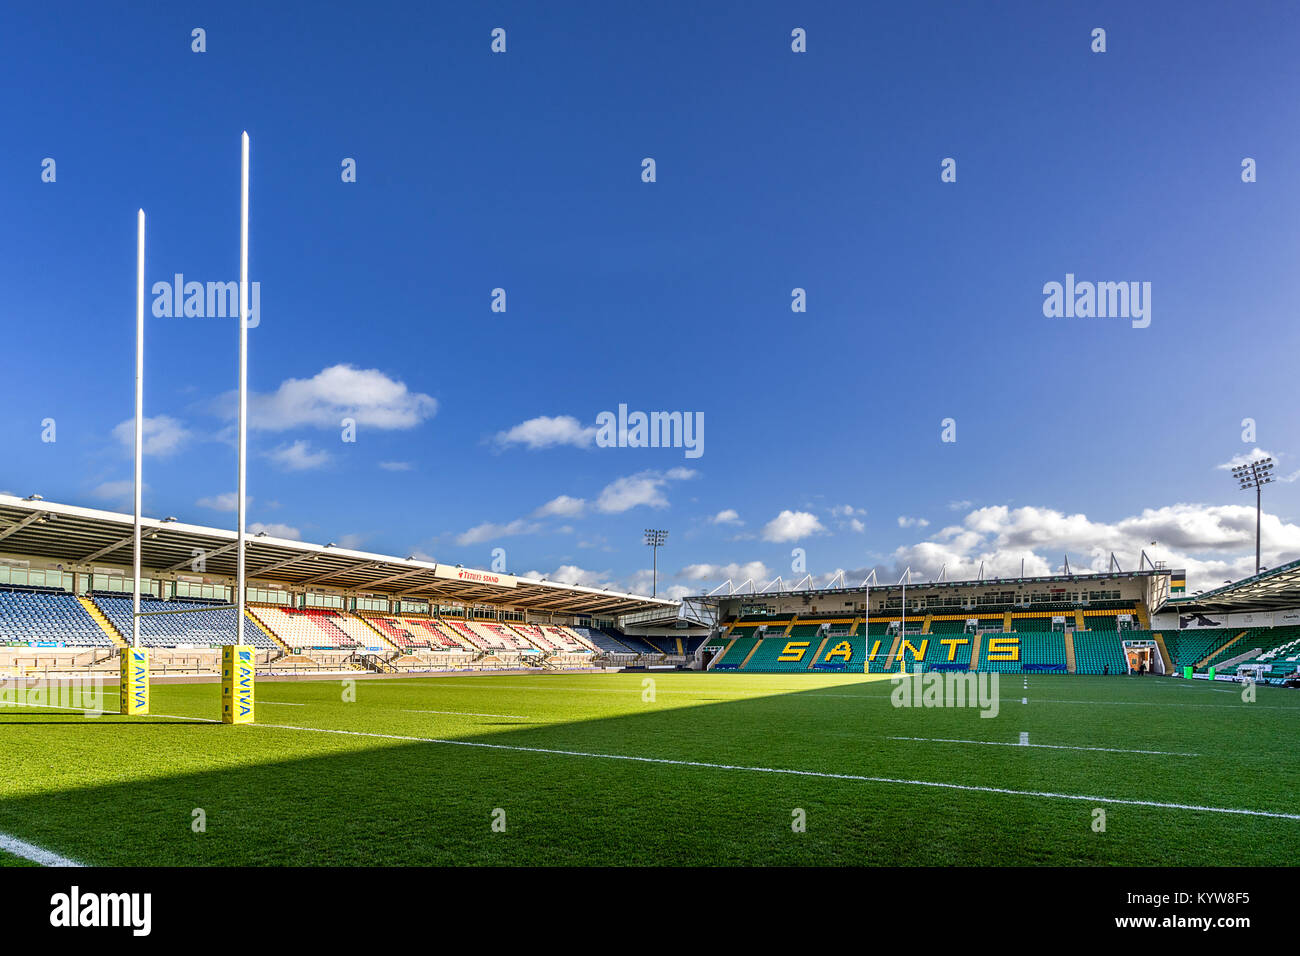 Franklin Gardens the home of Northampton Saints Rugby Club